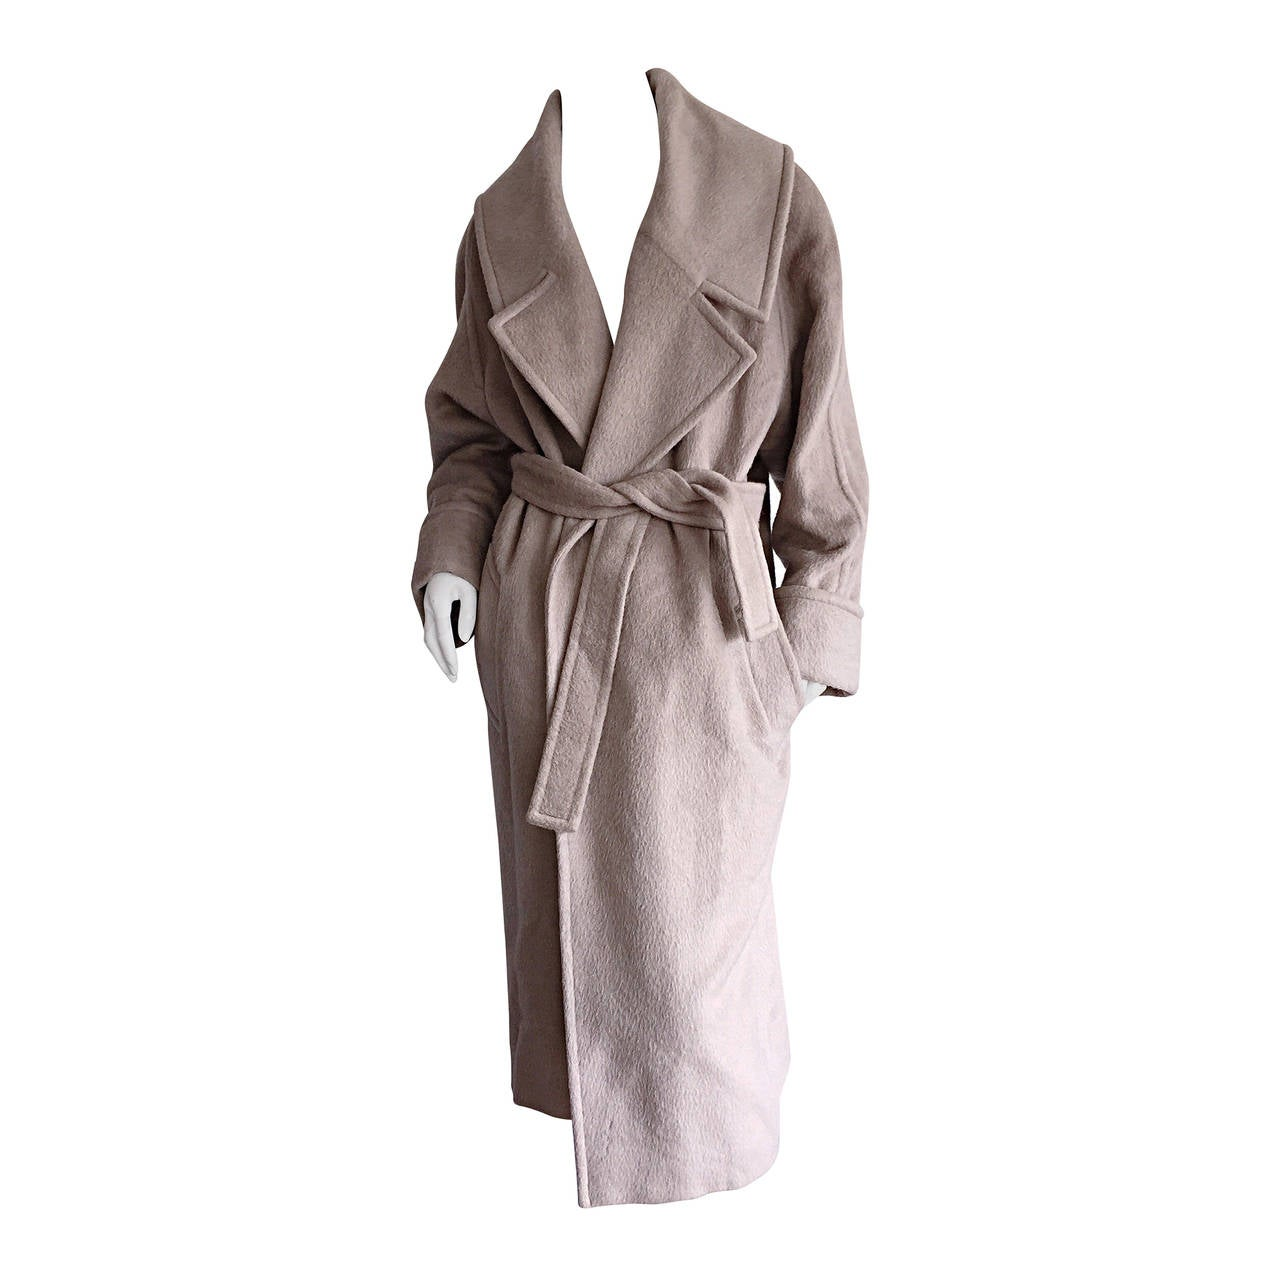 Stylish Vintage Guy Laroche Alpaca + Wool Taupe Wrap Blanket Jacket / Coat For Sale